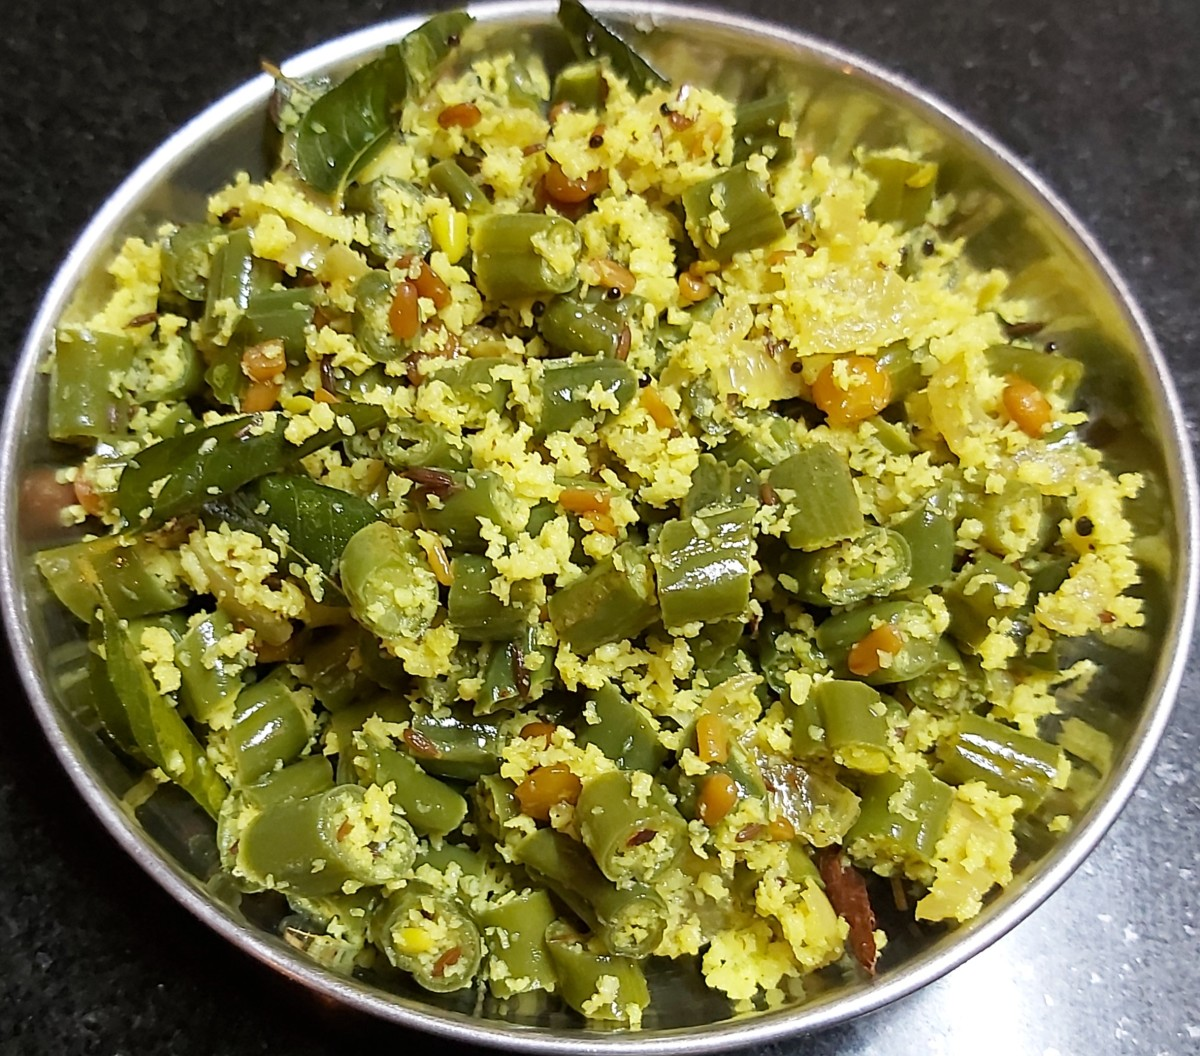 Beans poriyal is ready to serve with rice along with any other side dish.